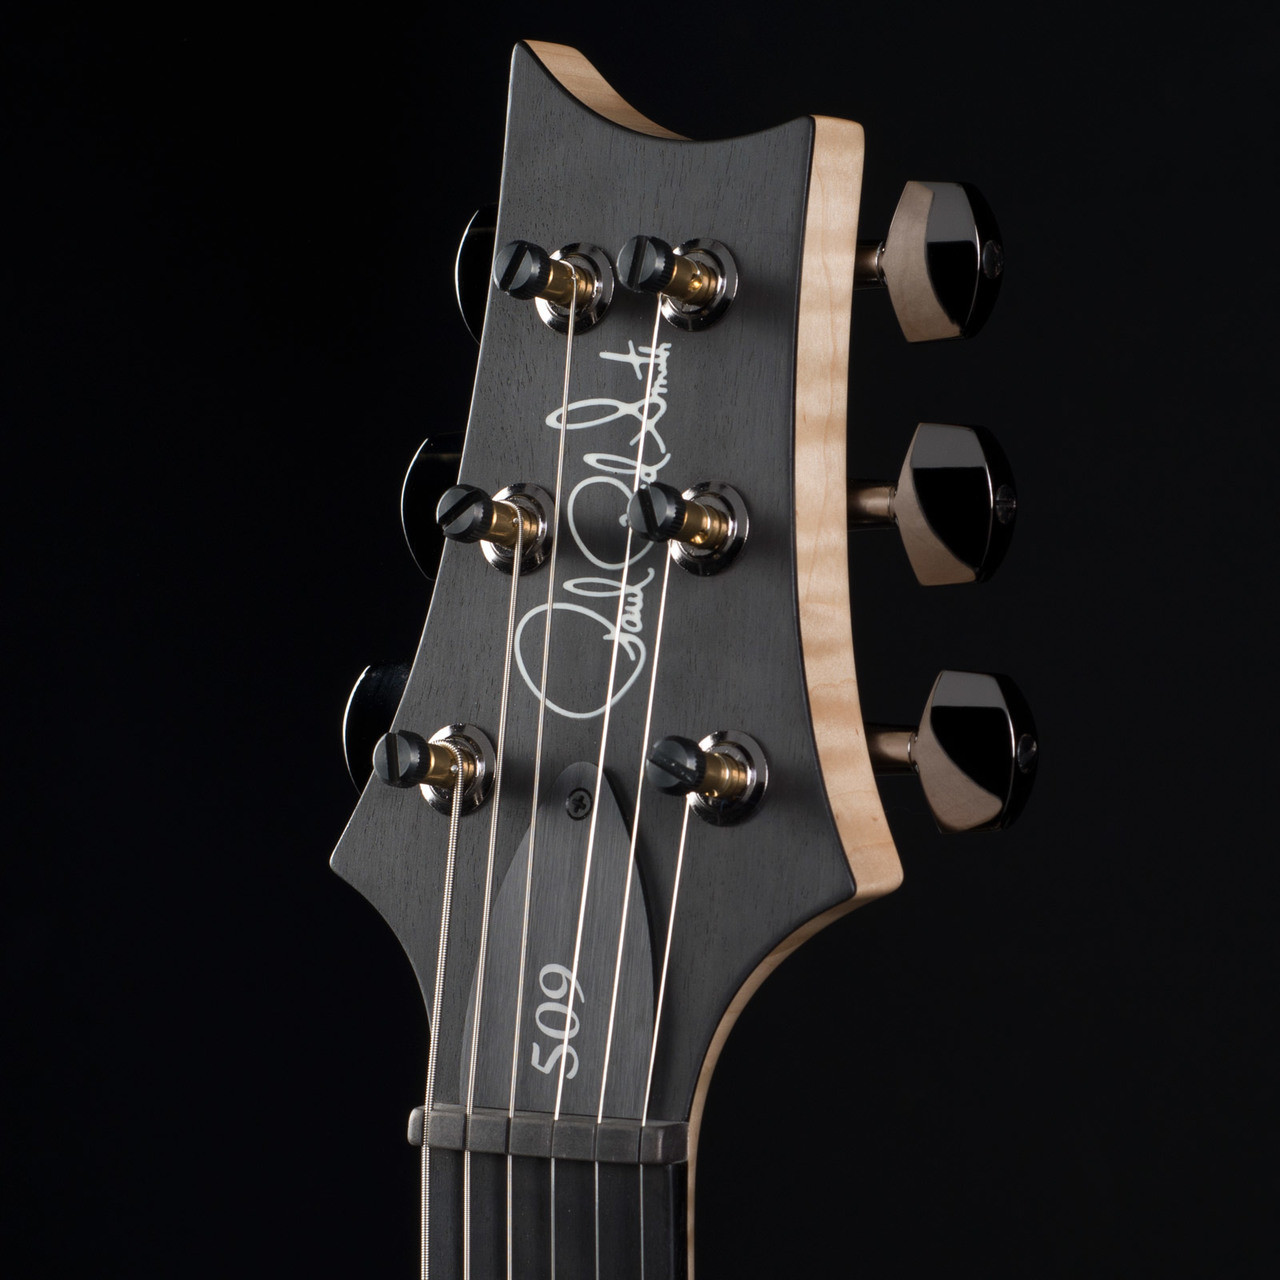 Remarkable Peavey T27 Wiring Diagram Pictures - Best Image ...